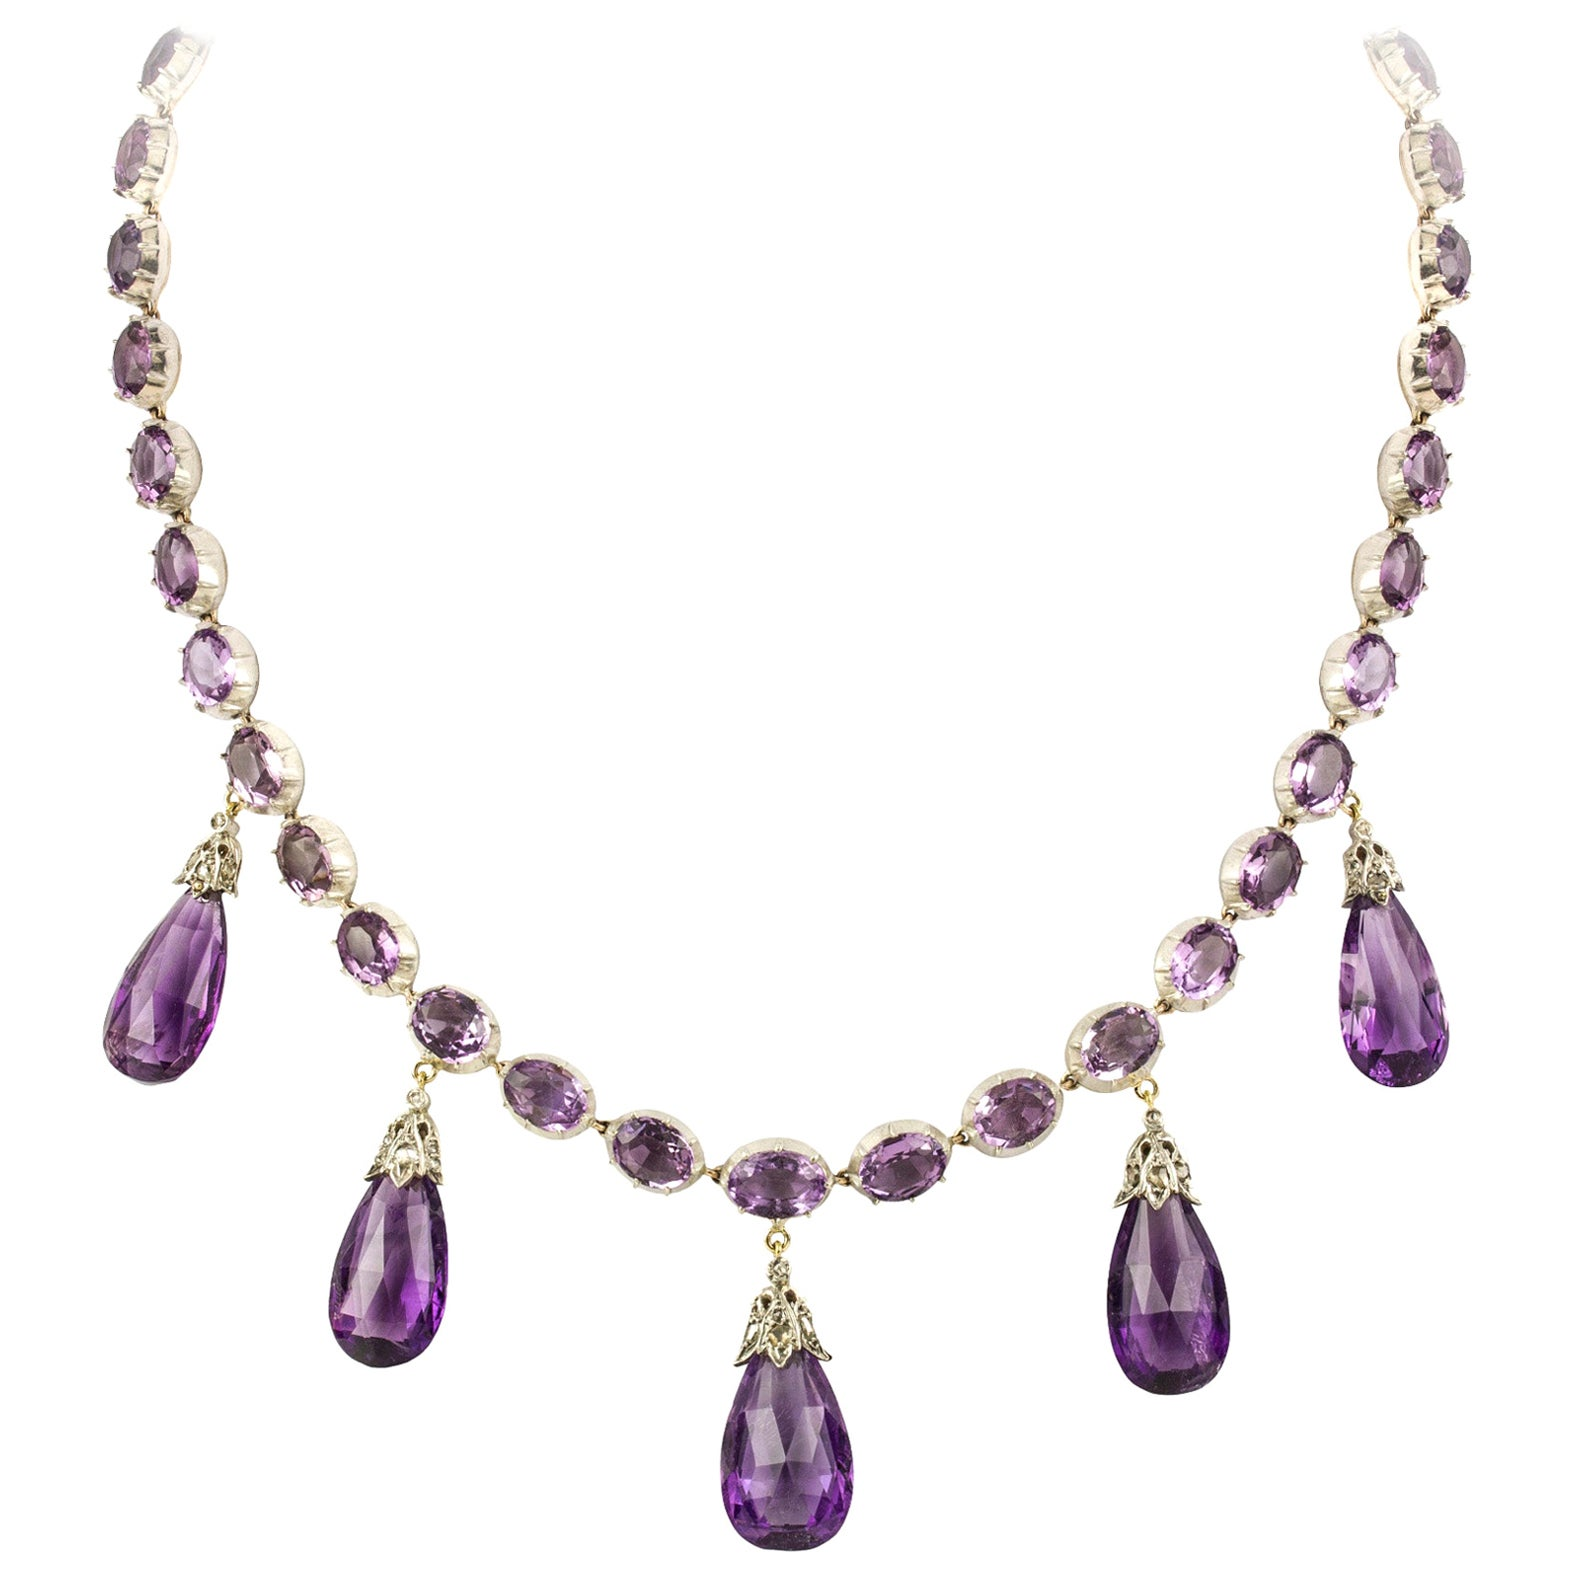 Late Victorian Amethyst Necklace and Earrings